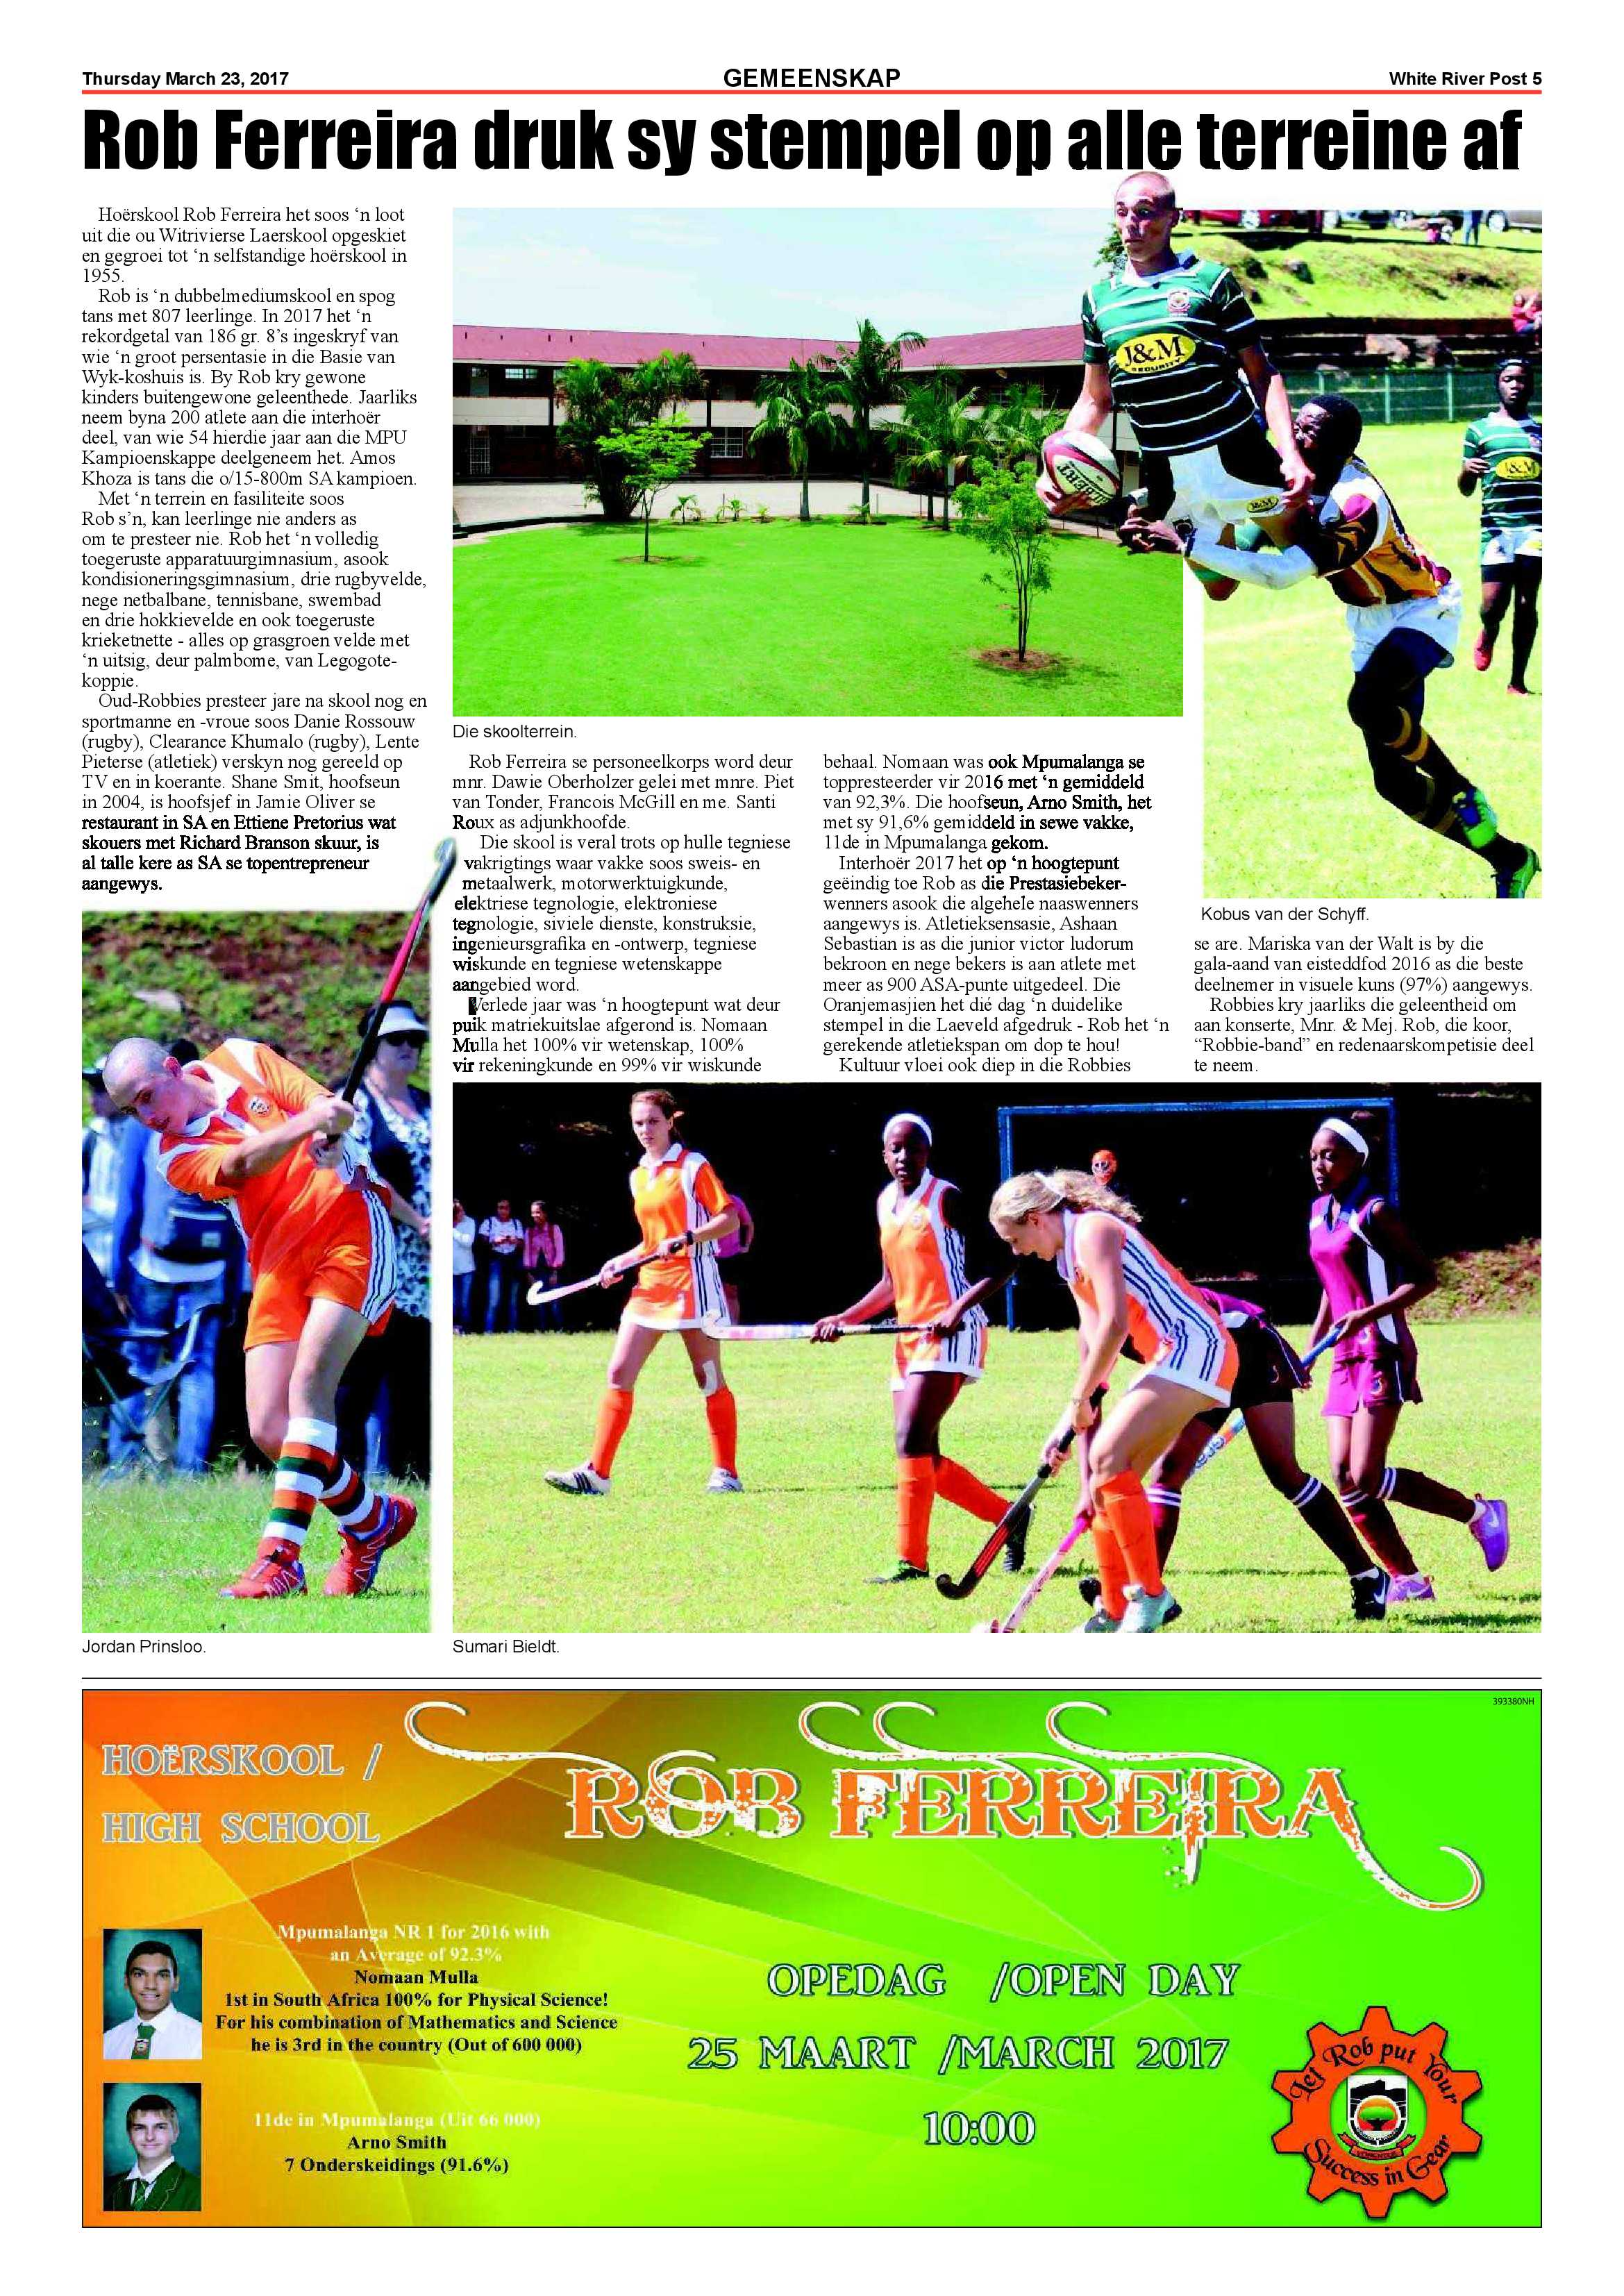 Posts for march page 7 - White River Post 23 March 2 Epapers Page